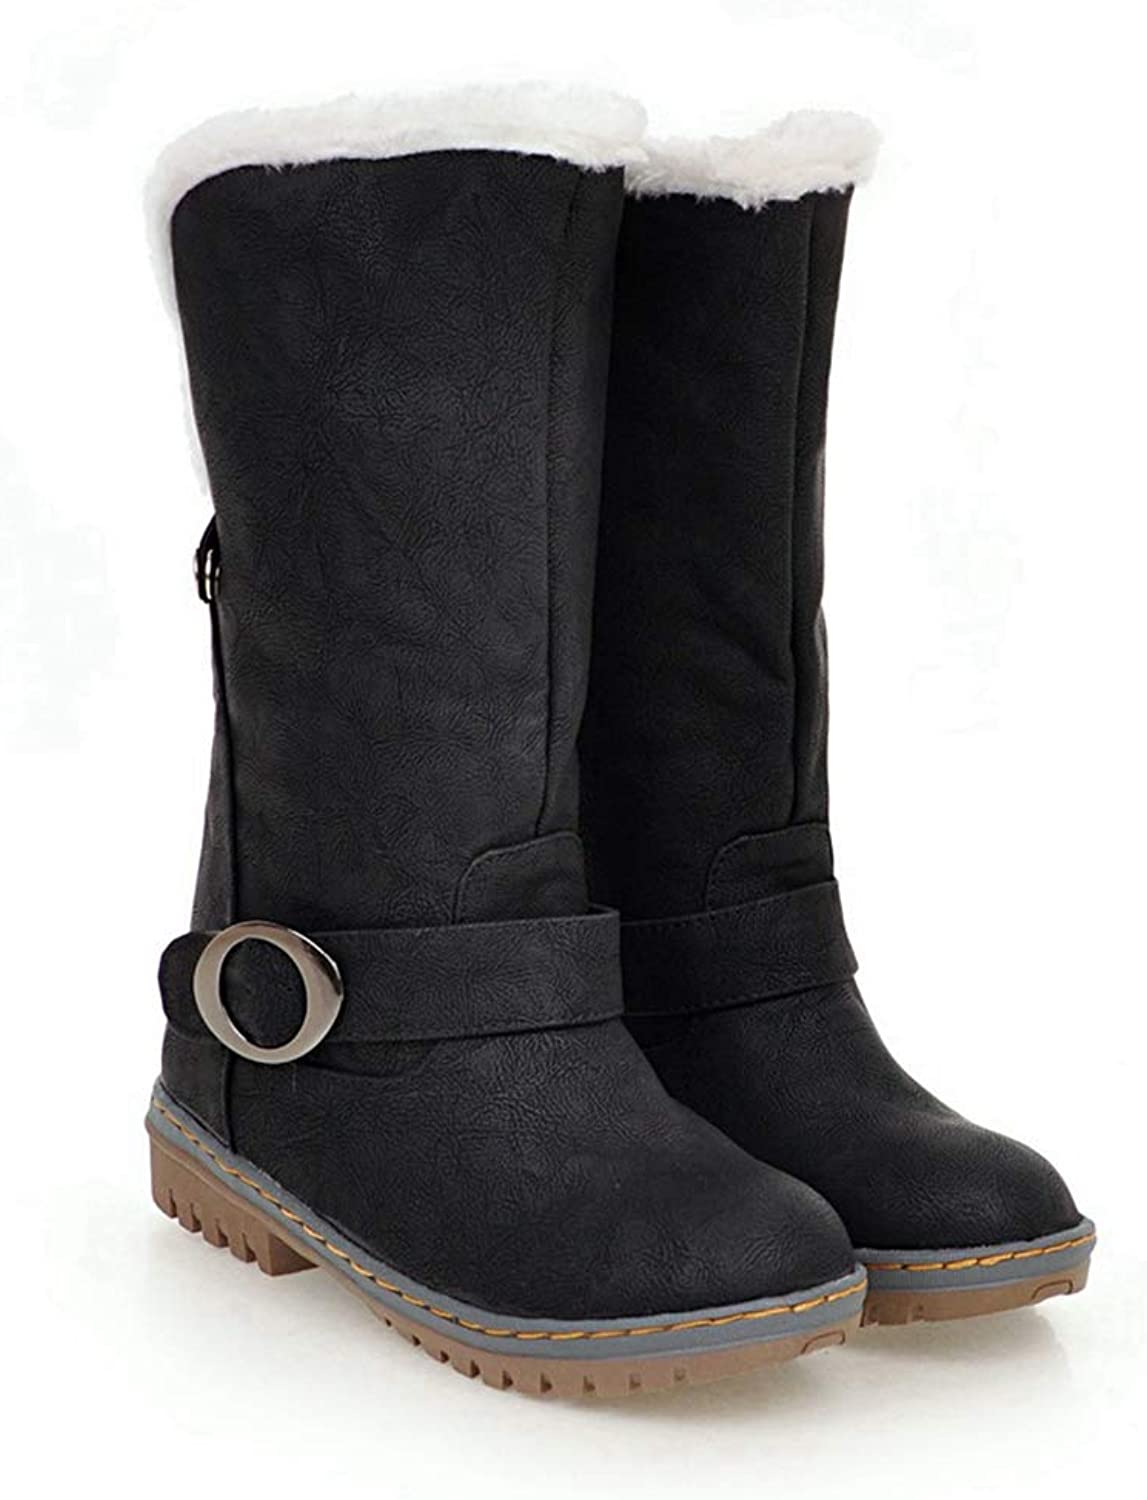 CYBLING Womens Winter Mid Calf Boots Riding Military Moto Chunky Low Heel Buckle Strap Snow Boots